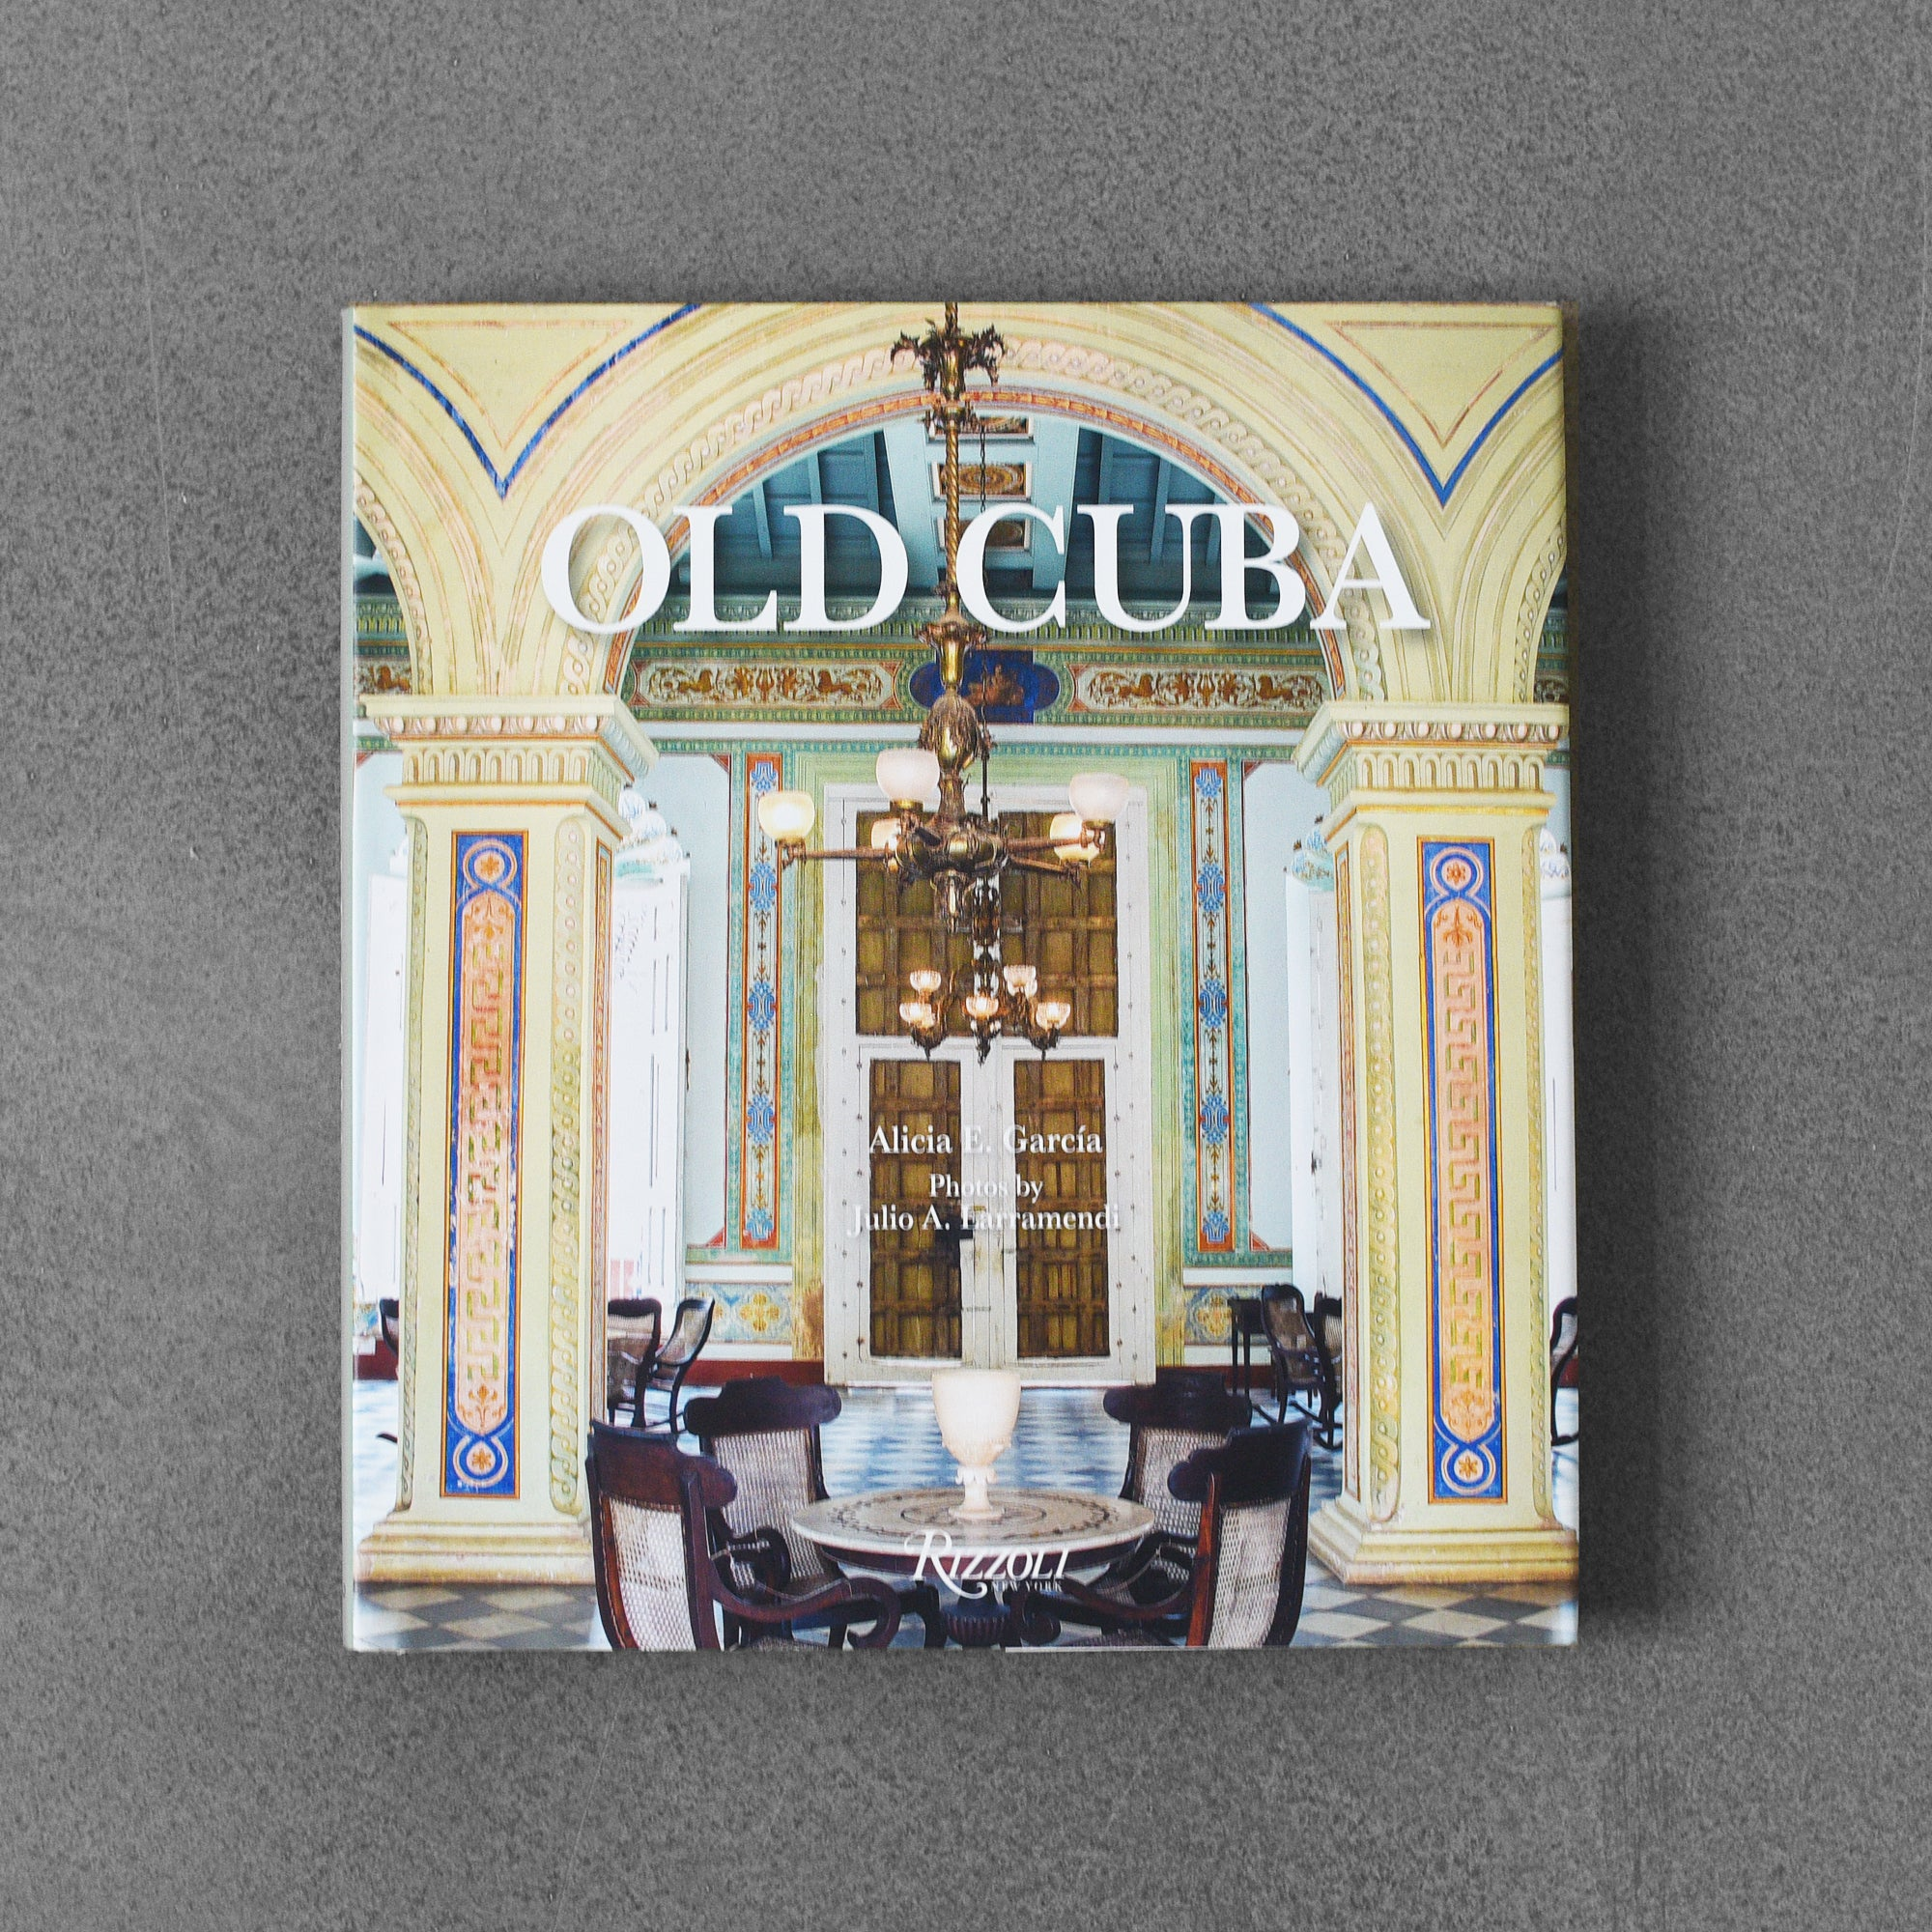 Old Cuba: Urban and Vernacular Architecture - Alicia E. García